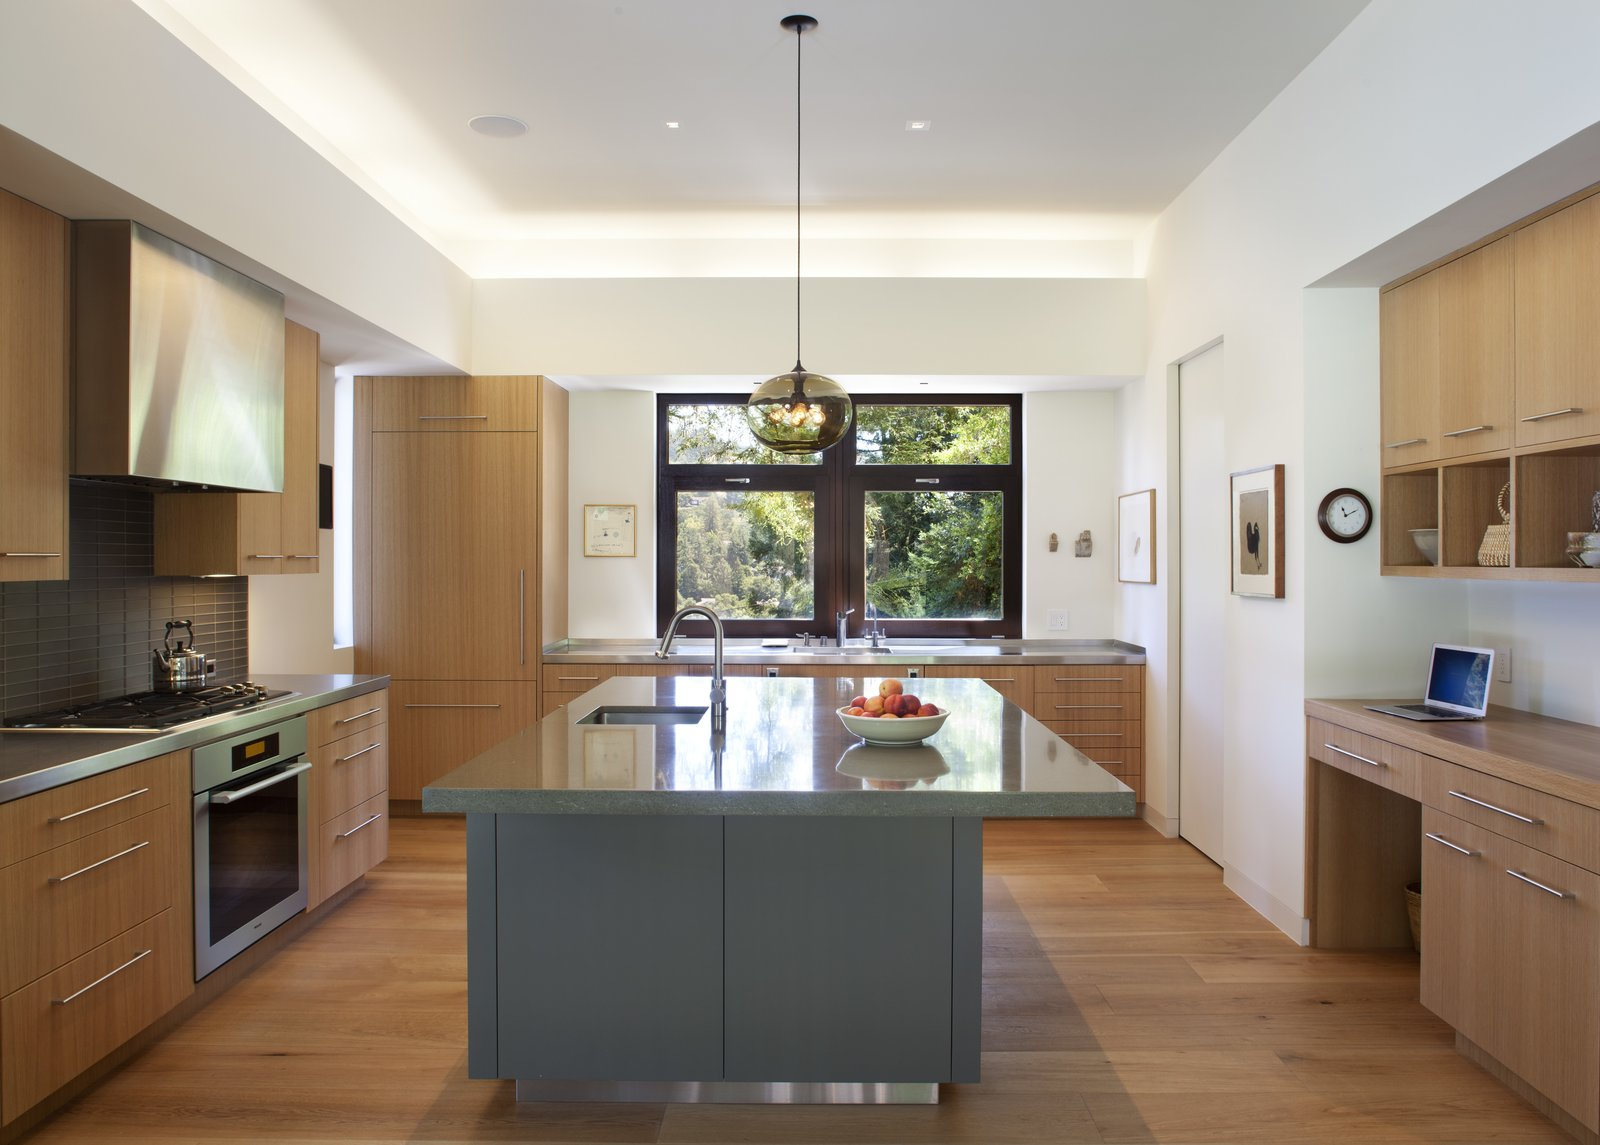 Kitchen, Refrigerator, Range, Wood, Concrete, Range Hood, Pendant, Ceiling, Drop In, and Light Hardwood Kitchen  Best Kitchen Light Hardwood Drop In Range Photos from Mt. Tam House